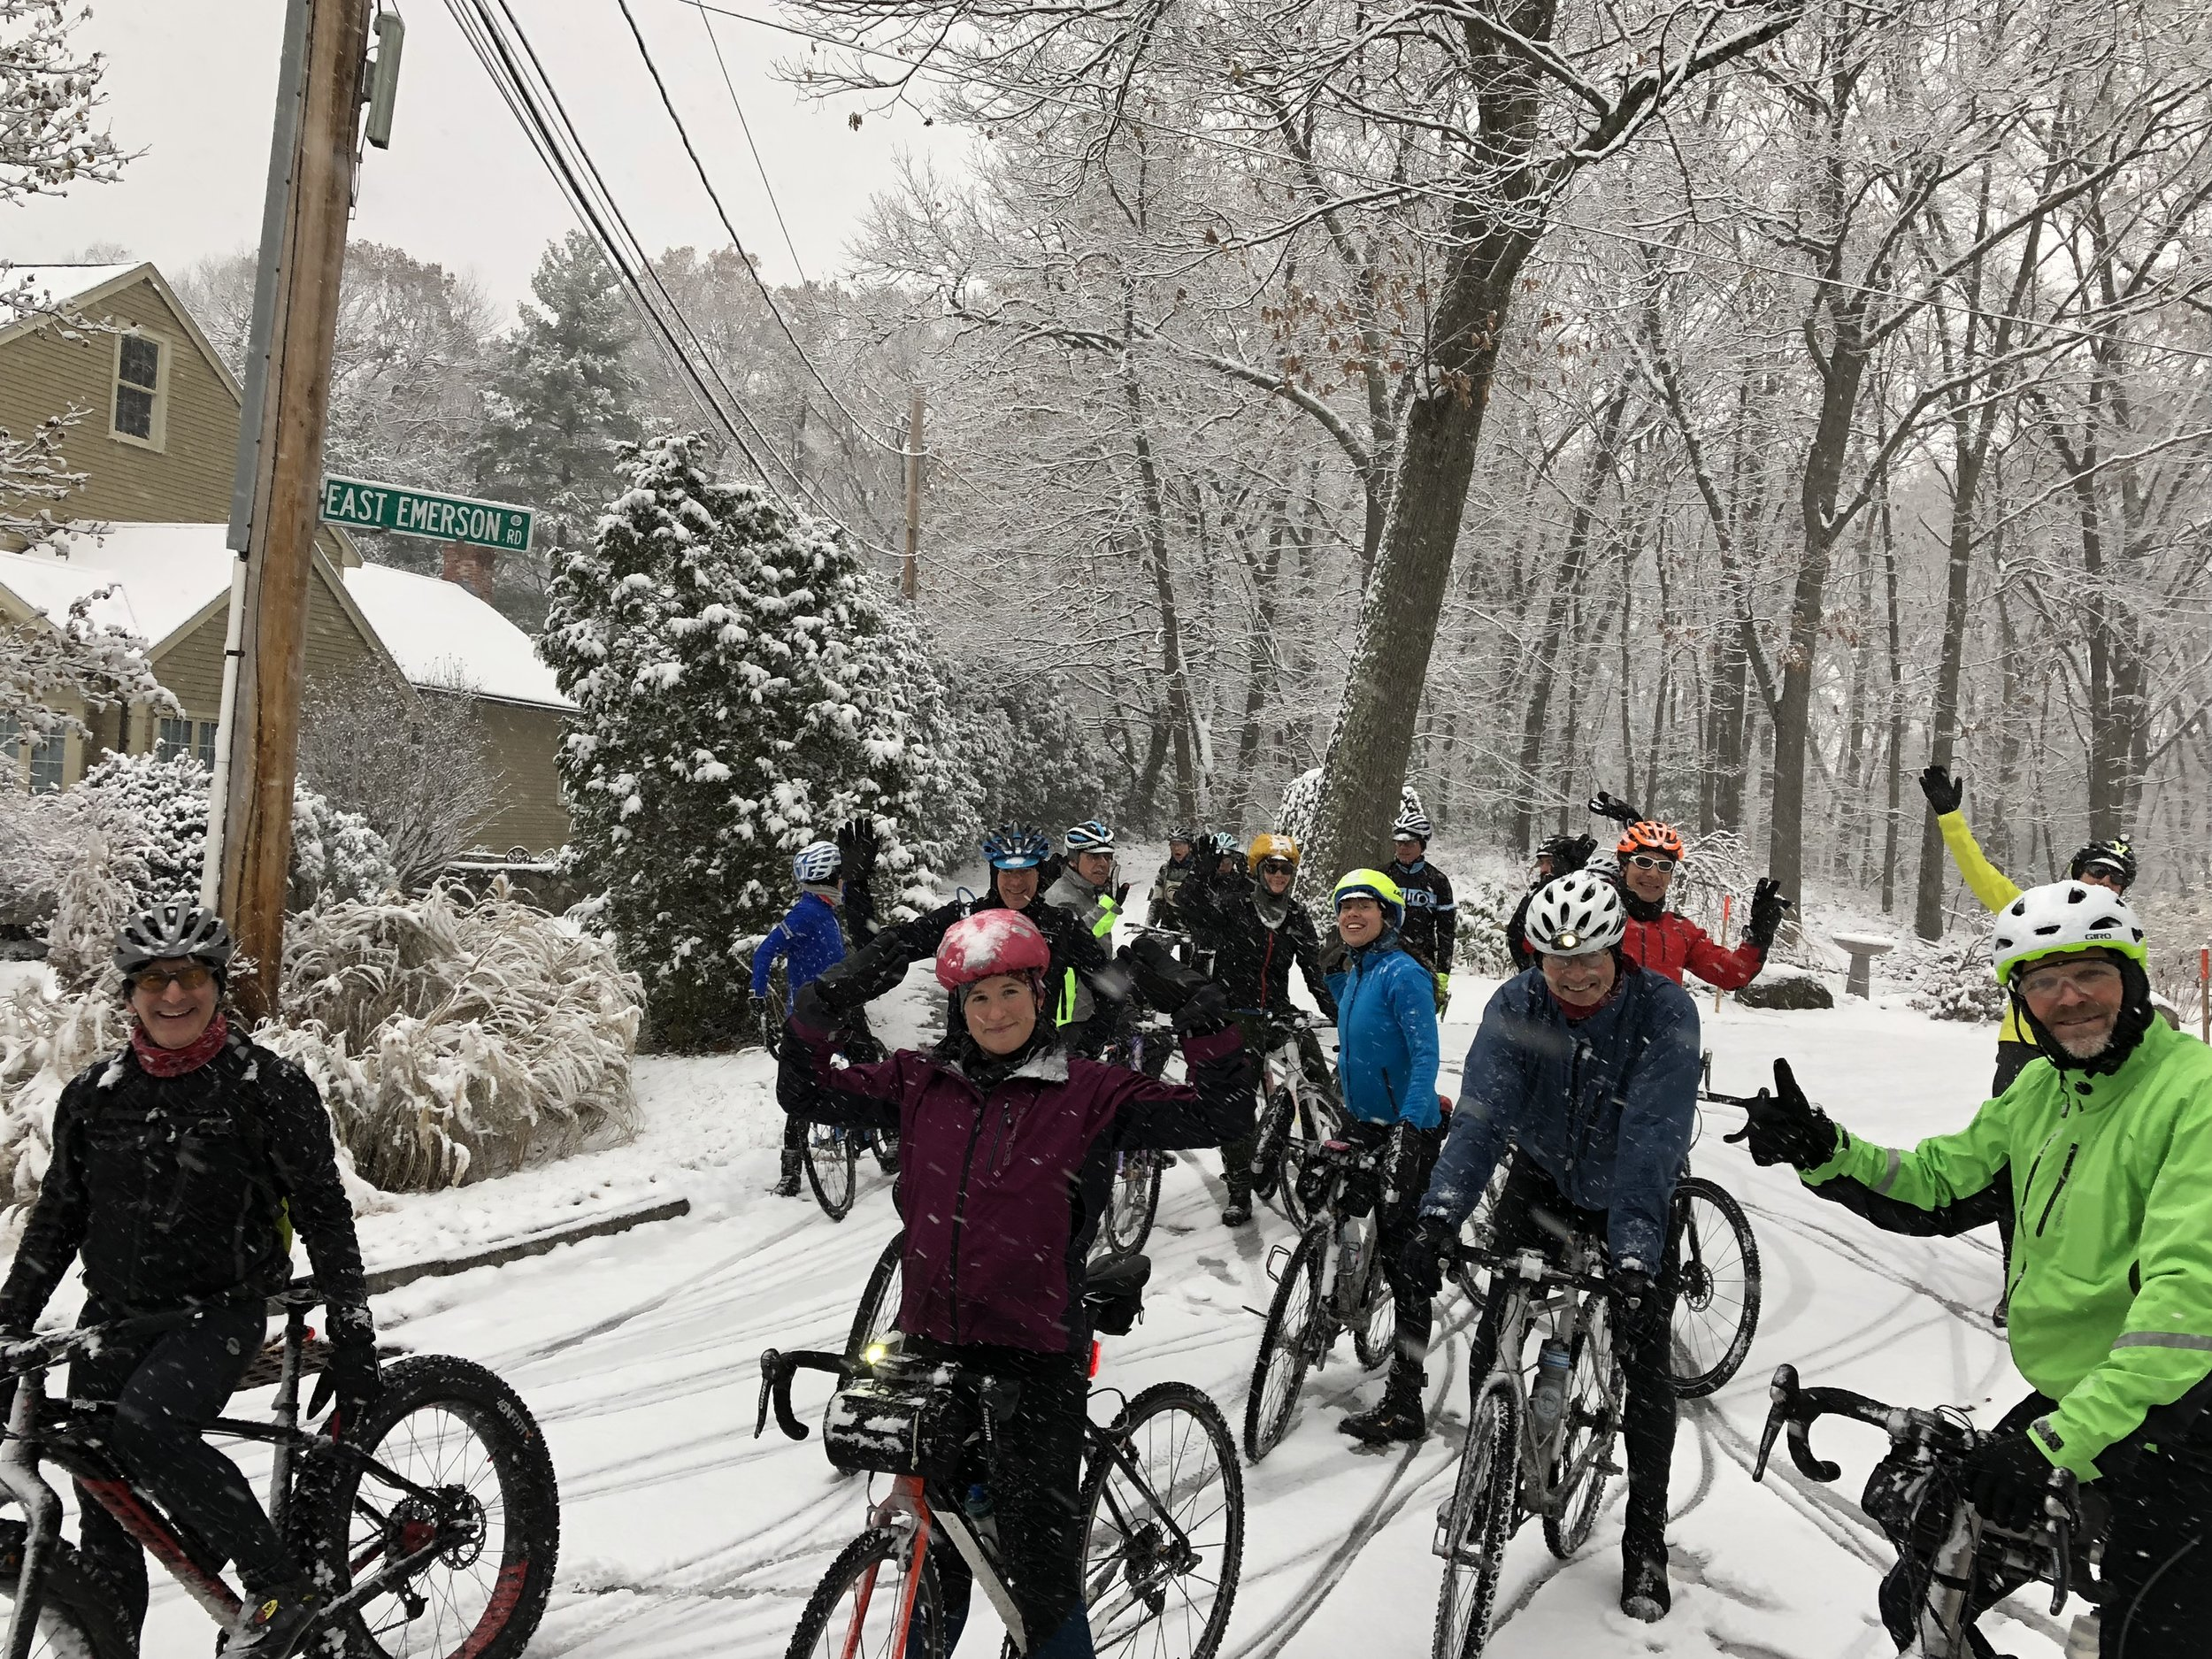 This was one of three groups and over 40 people who joined in on the First Snow Ride last year at Ride Studio. The first snow last year hit at 1pm on a Saturday. The previous year, the first snow was at 8am on a Monday morning - we still had a great group show up! The previous year to that, the inaugural year, we had ~17 riders join in at 3am in the morning for the First Snow and it was magical! Prepare now so you are ready when it hits!